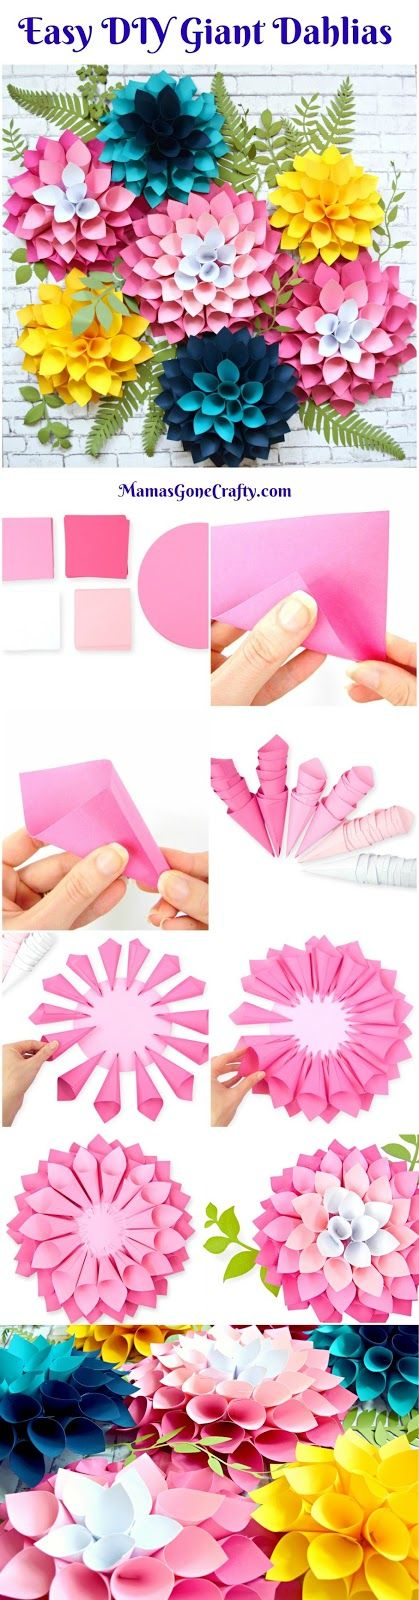 How to make giant paper flower dahlias flower templates diy paper how to make giant paper flower dahlias flower templates diy paper flowers how to make a flower wall mightylinksfo